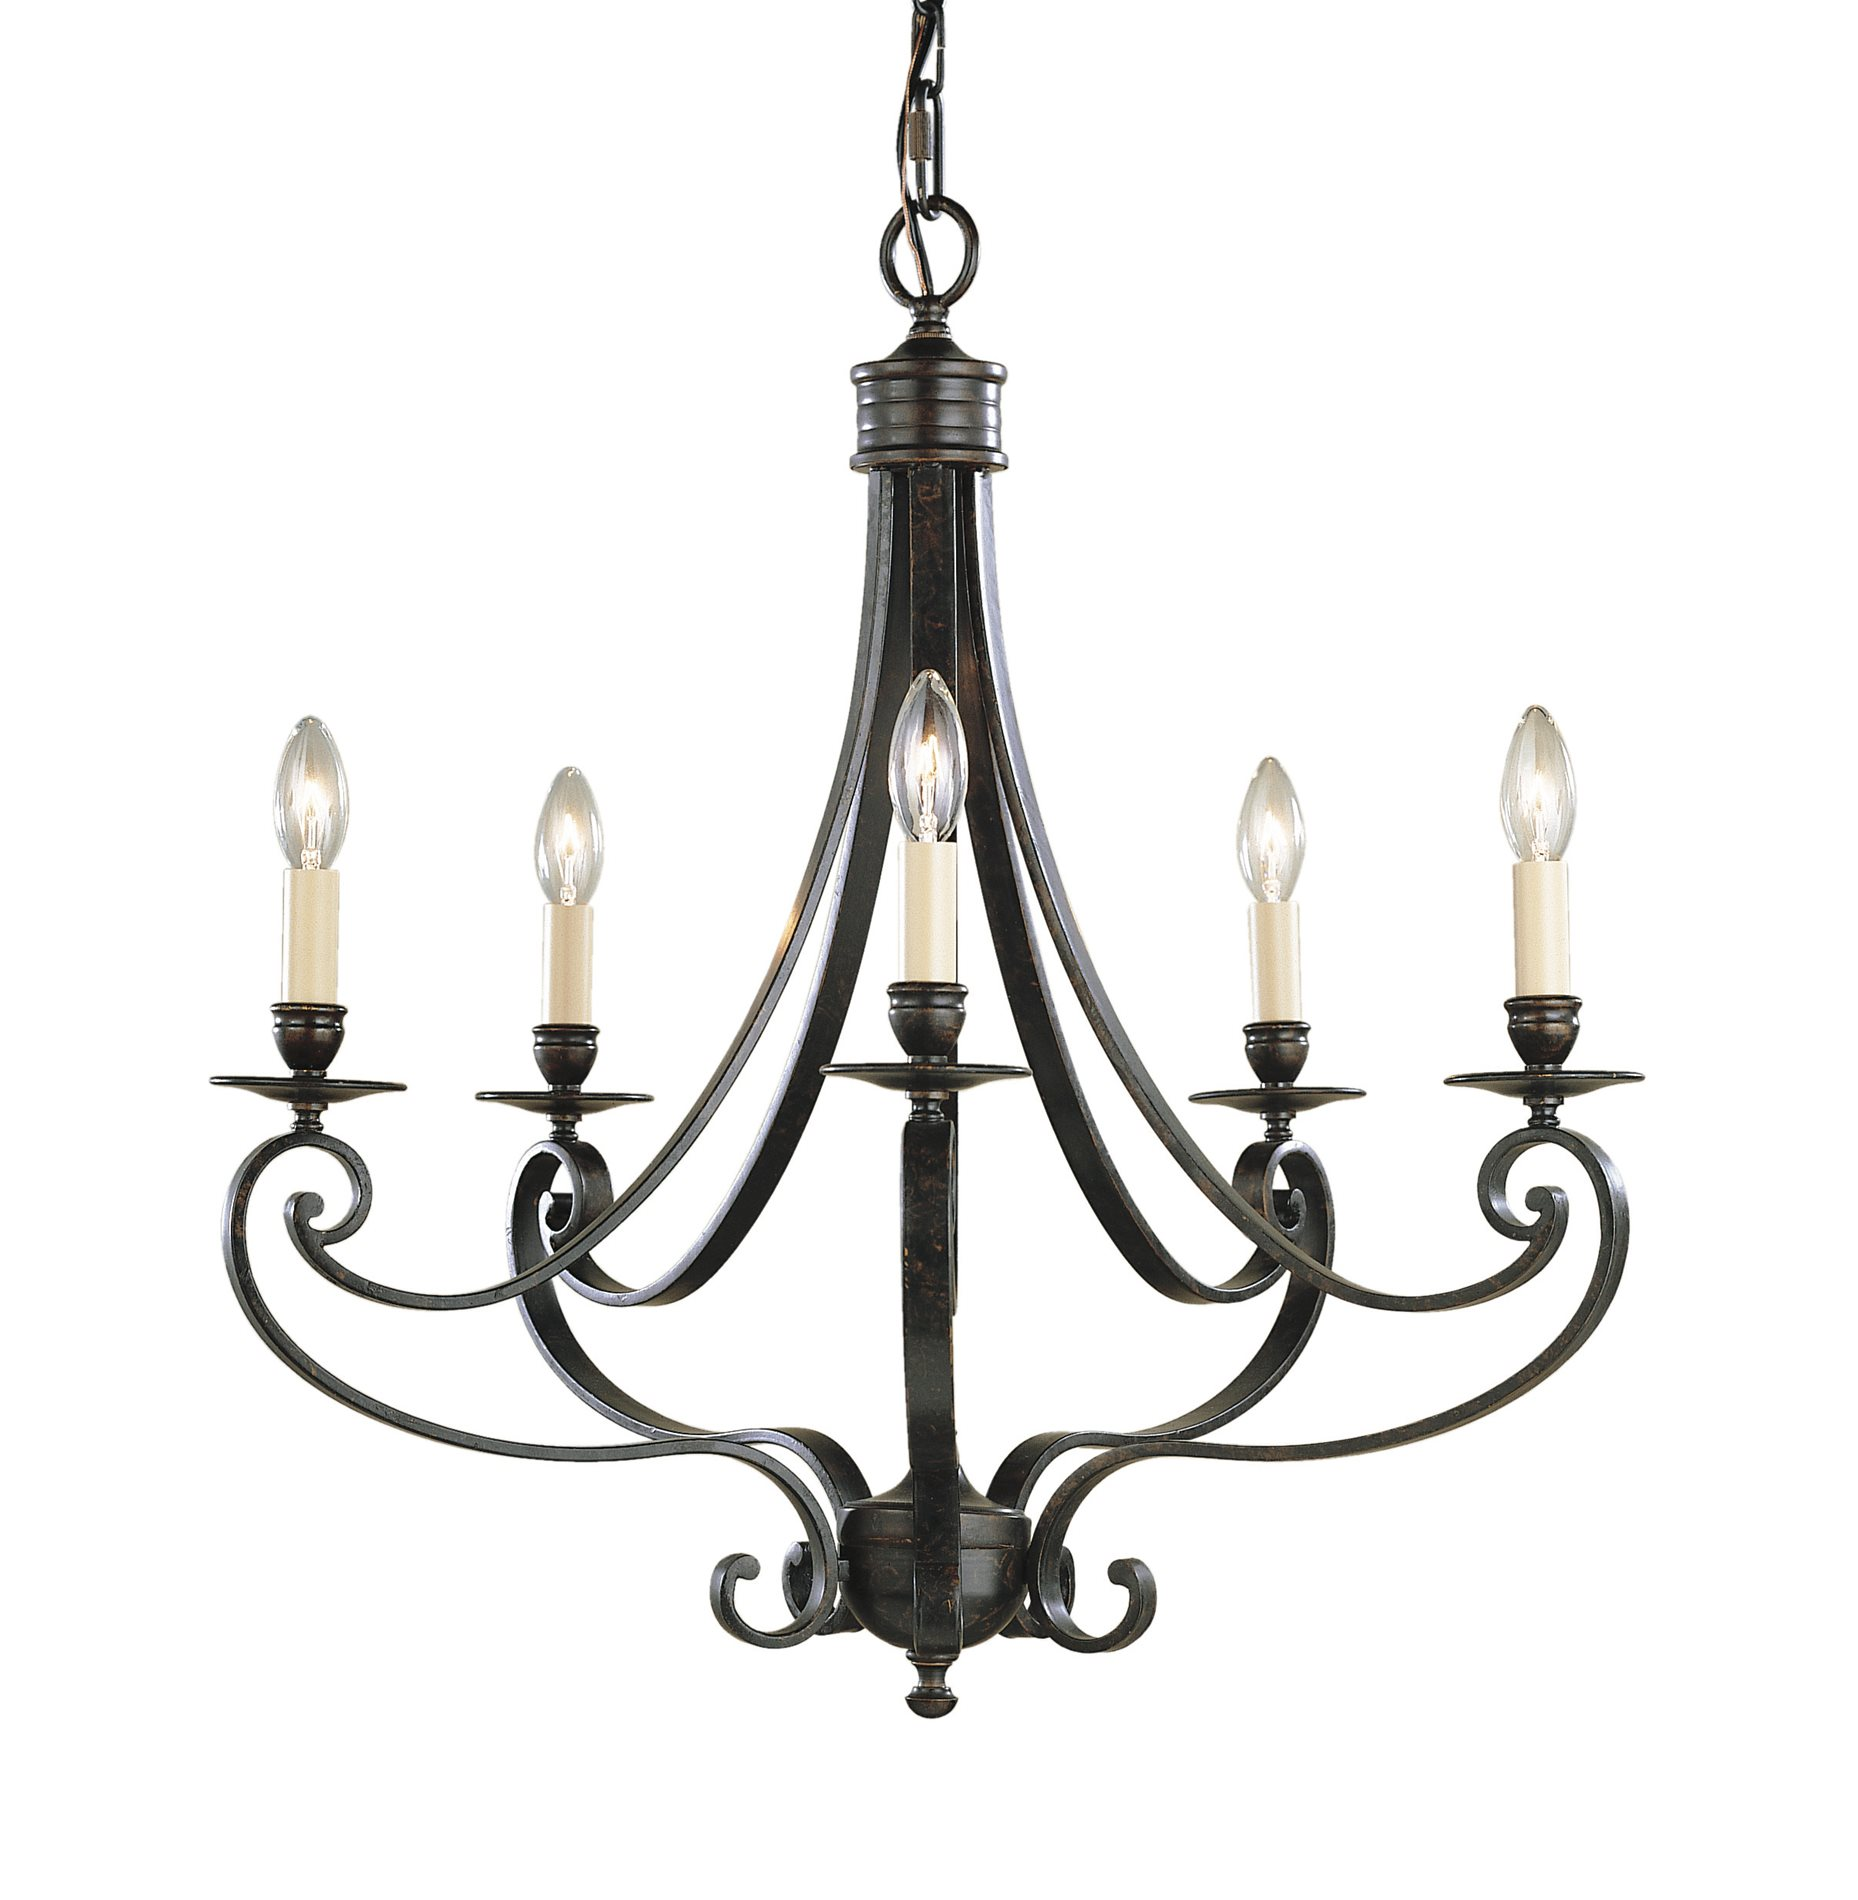 Murray Feiss Ceiling Fan Light Kit: Murray Feiss F1929/5LBR Cervantes Transitional Chandelier